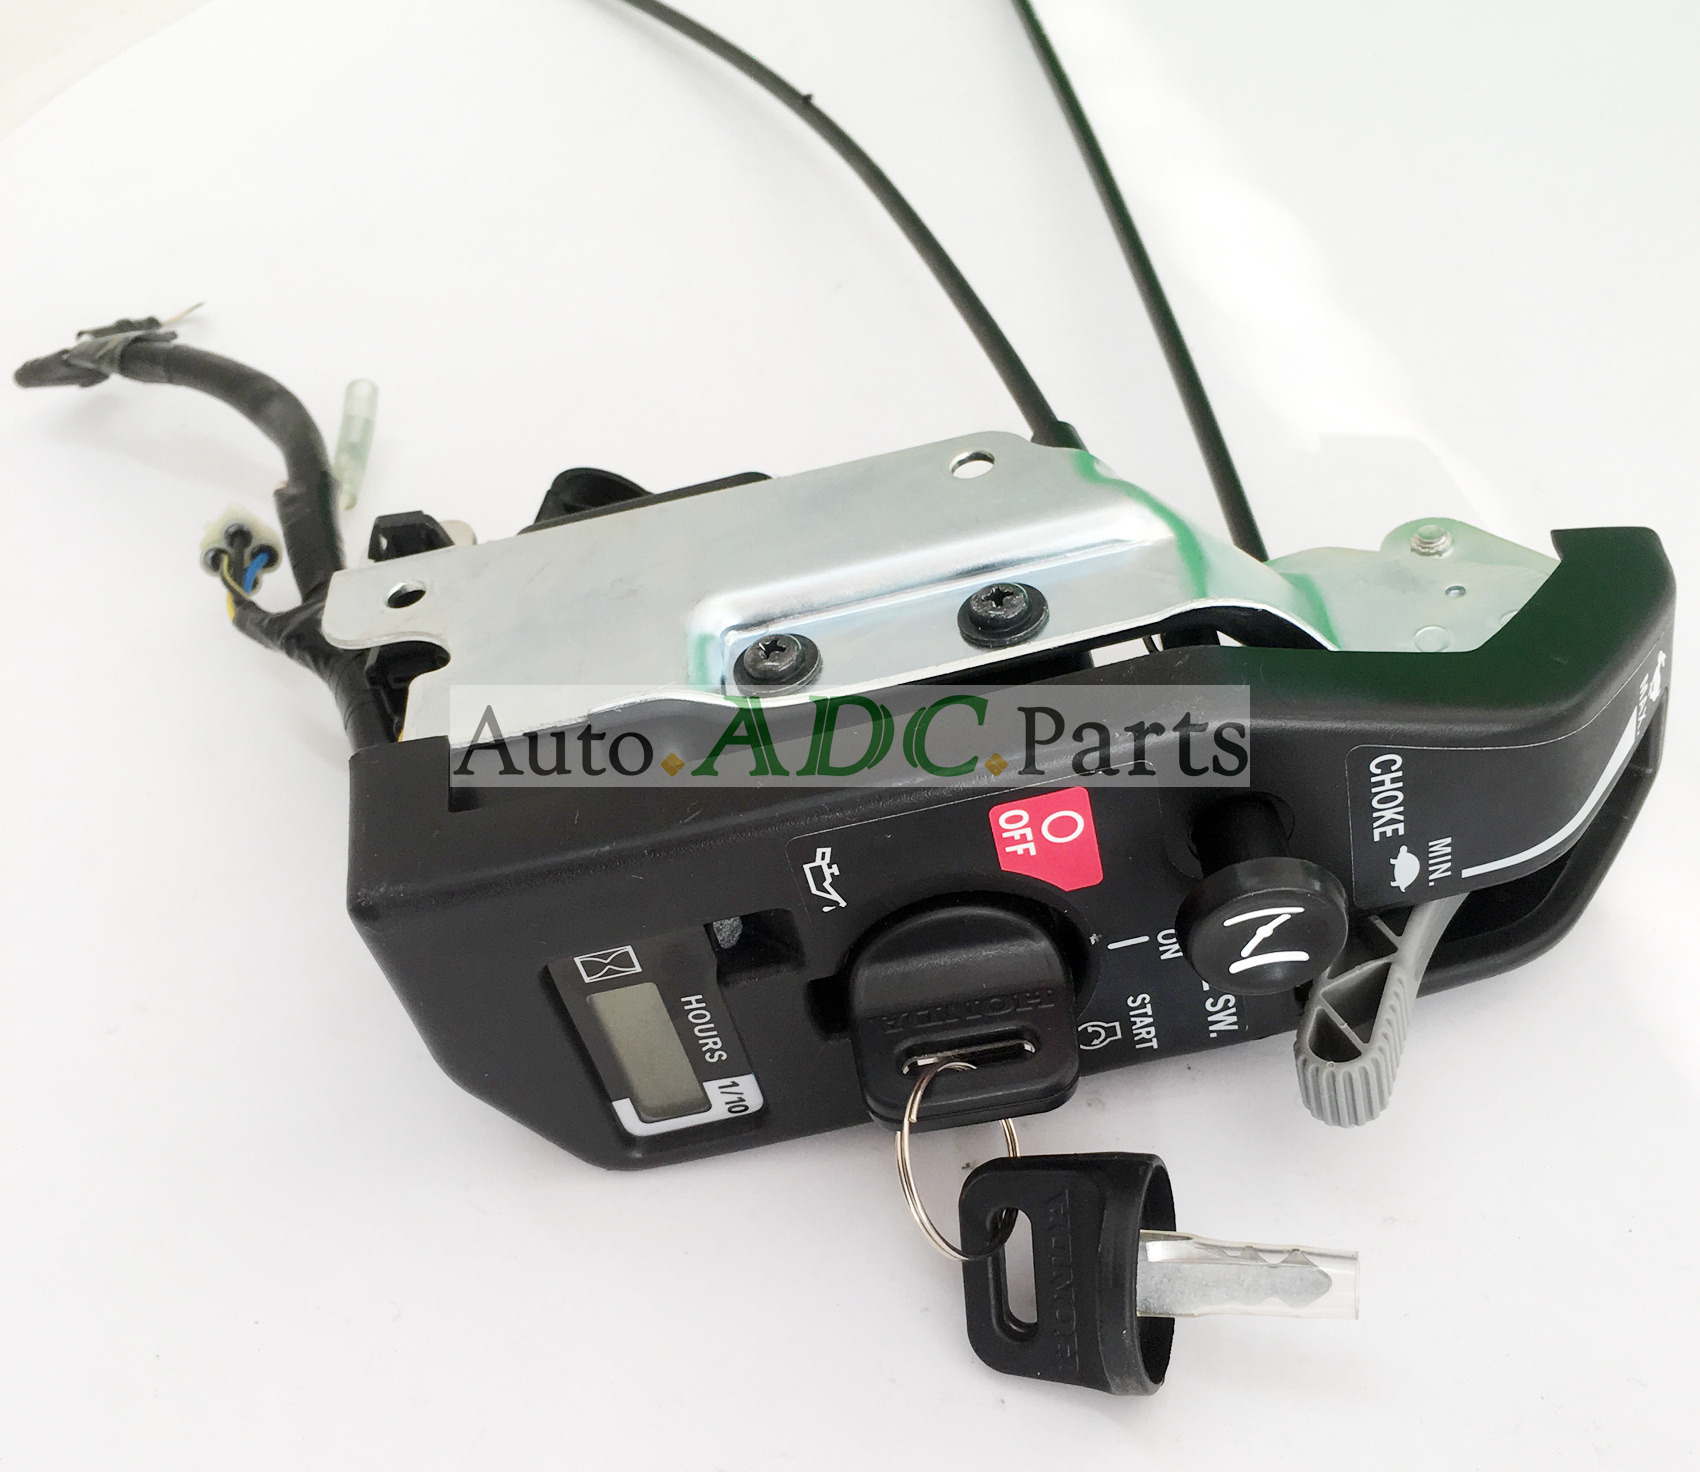 hight resolution of new ignition key switch control box for honda gx630 gx690 10kw generator